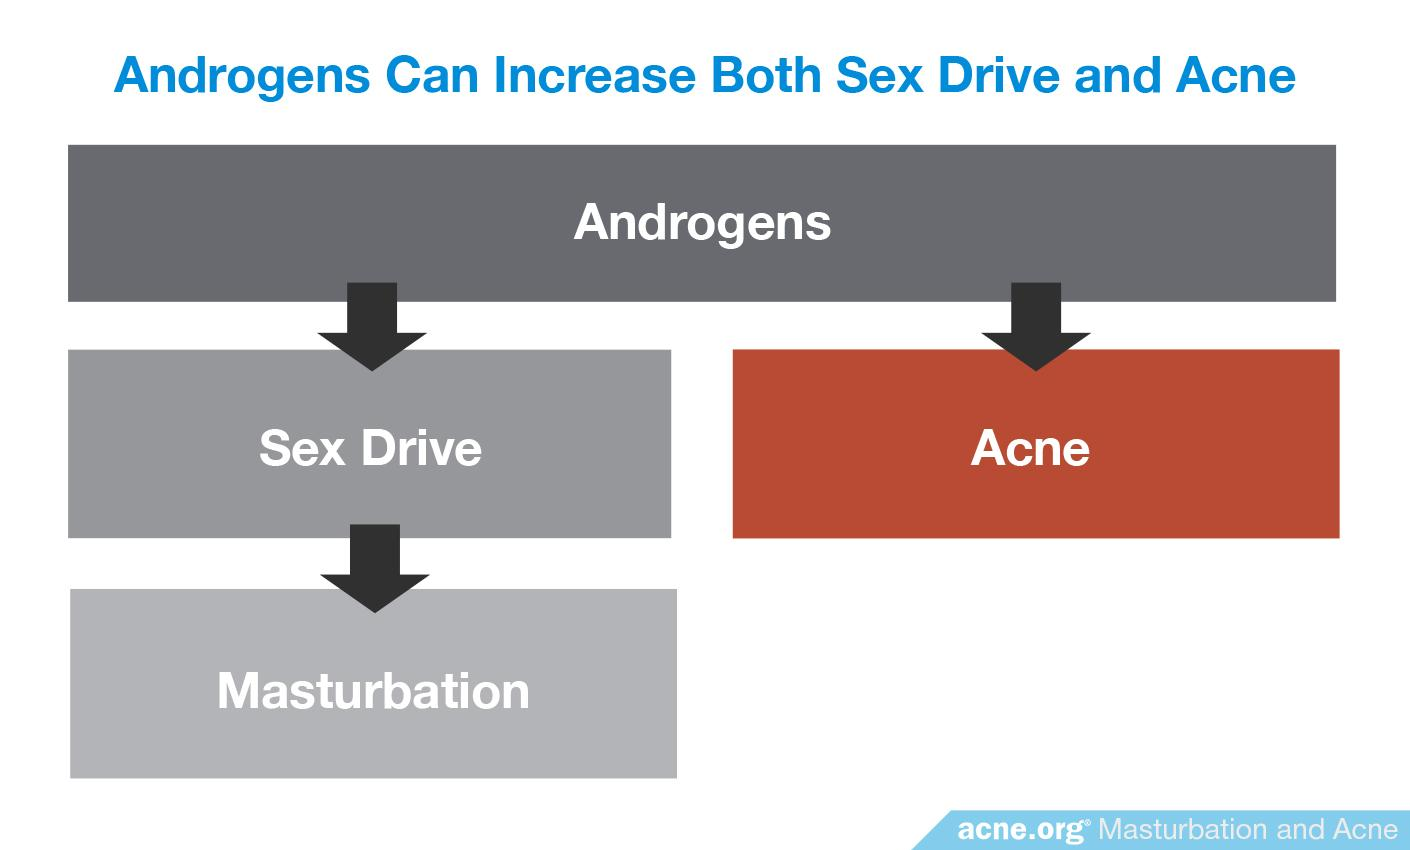 Androgens Can Increase Both Sex Drive and Acne